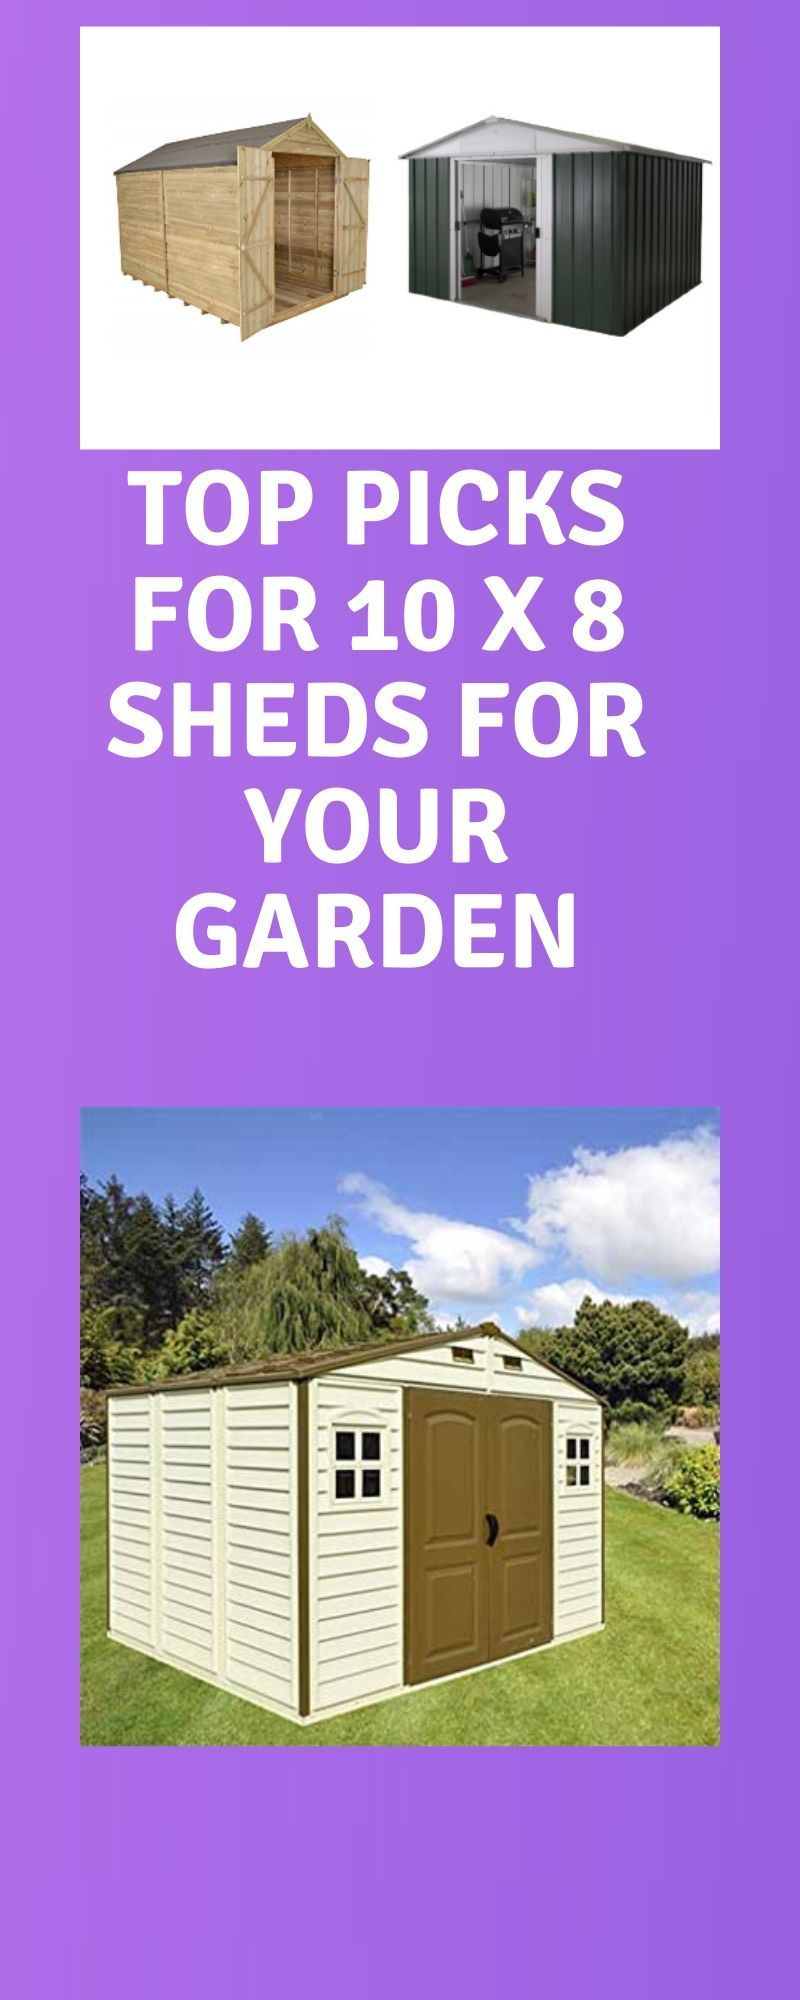 Top Picks For 10 X 8 Sheds For Your Garden In 2020 Shed Shed Design Plastic Sheds